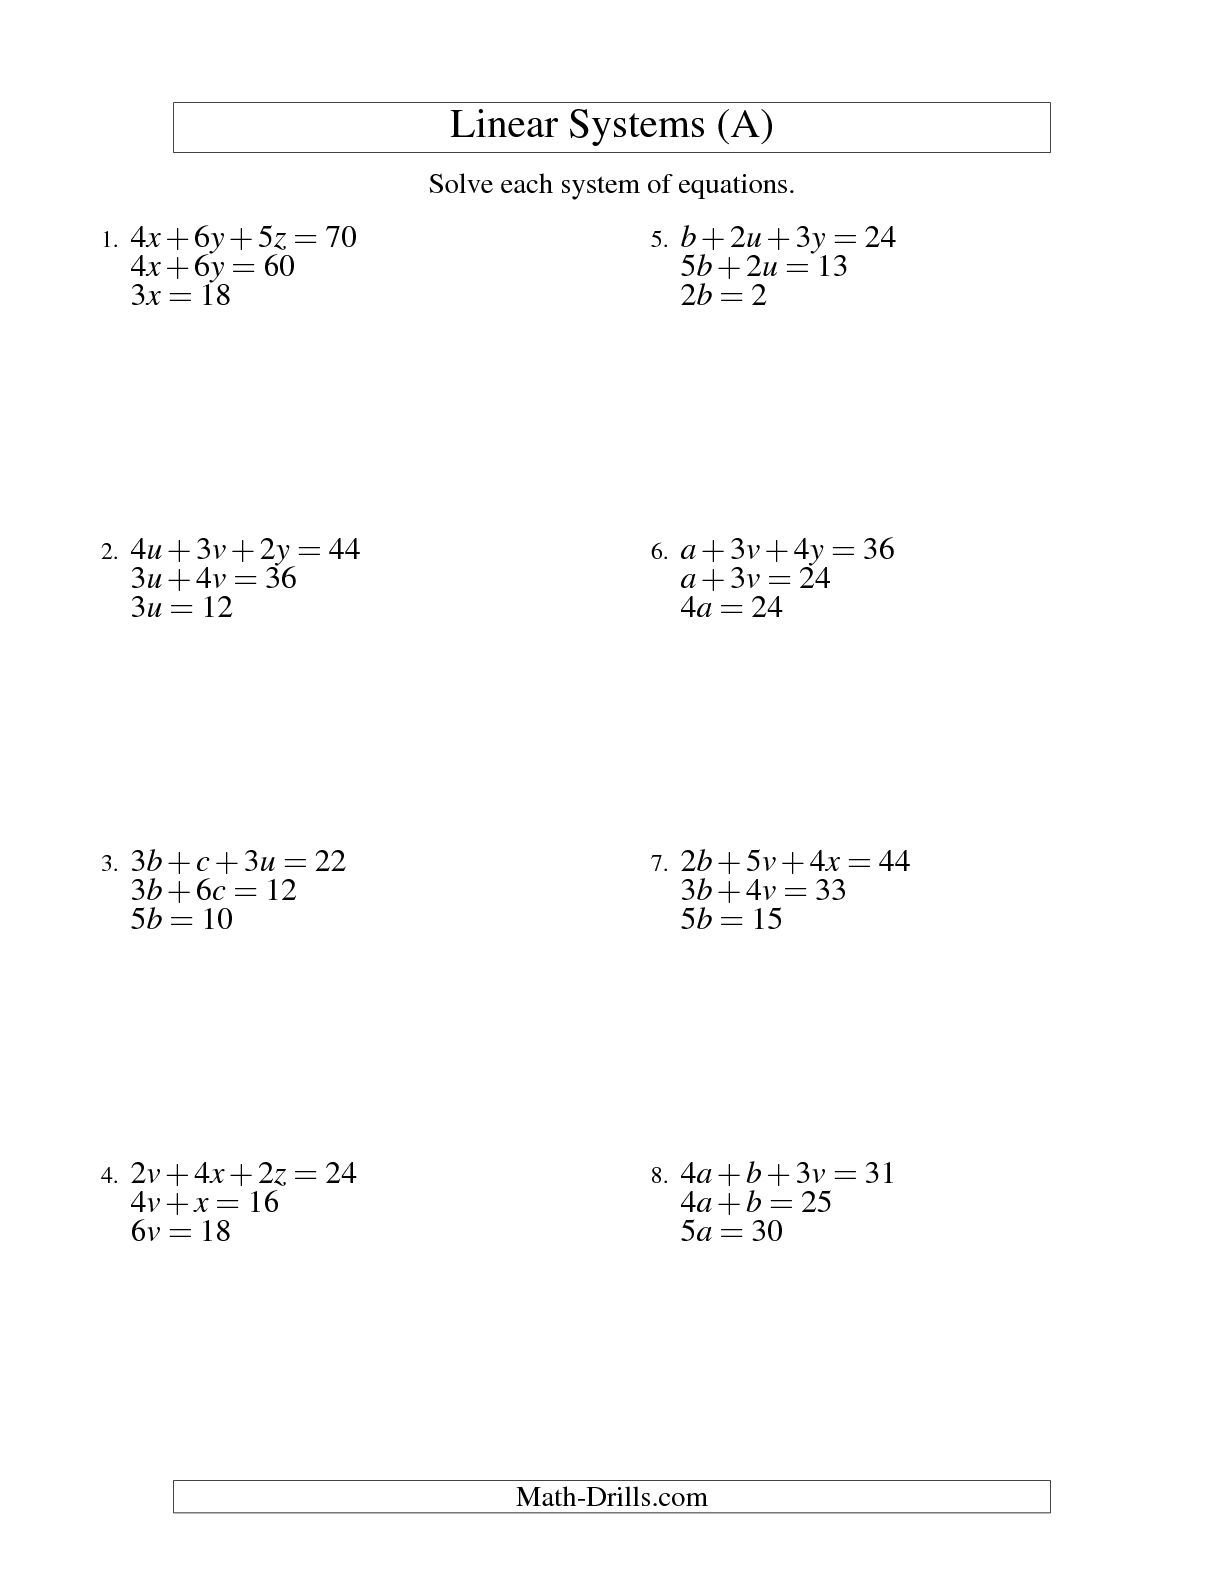 Worksheet Solving Systems Of Equationselimination Worksheet Along With Solving Systems Of Equations By Elimination Worksheet Pdf